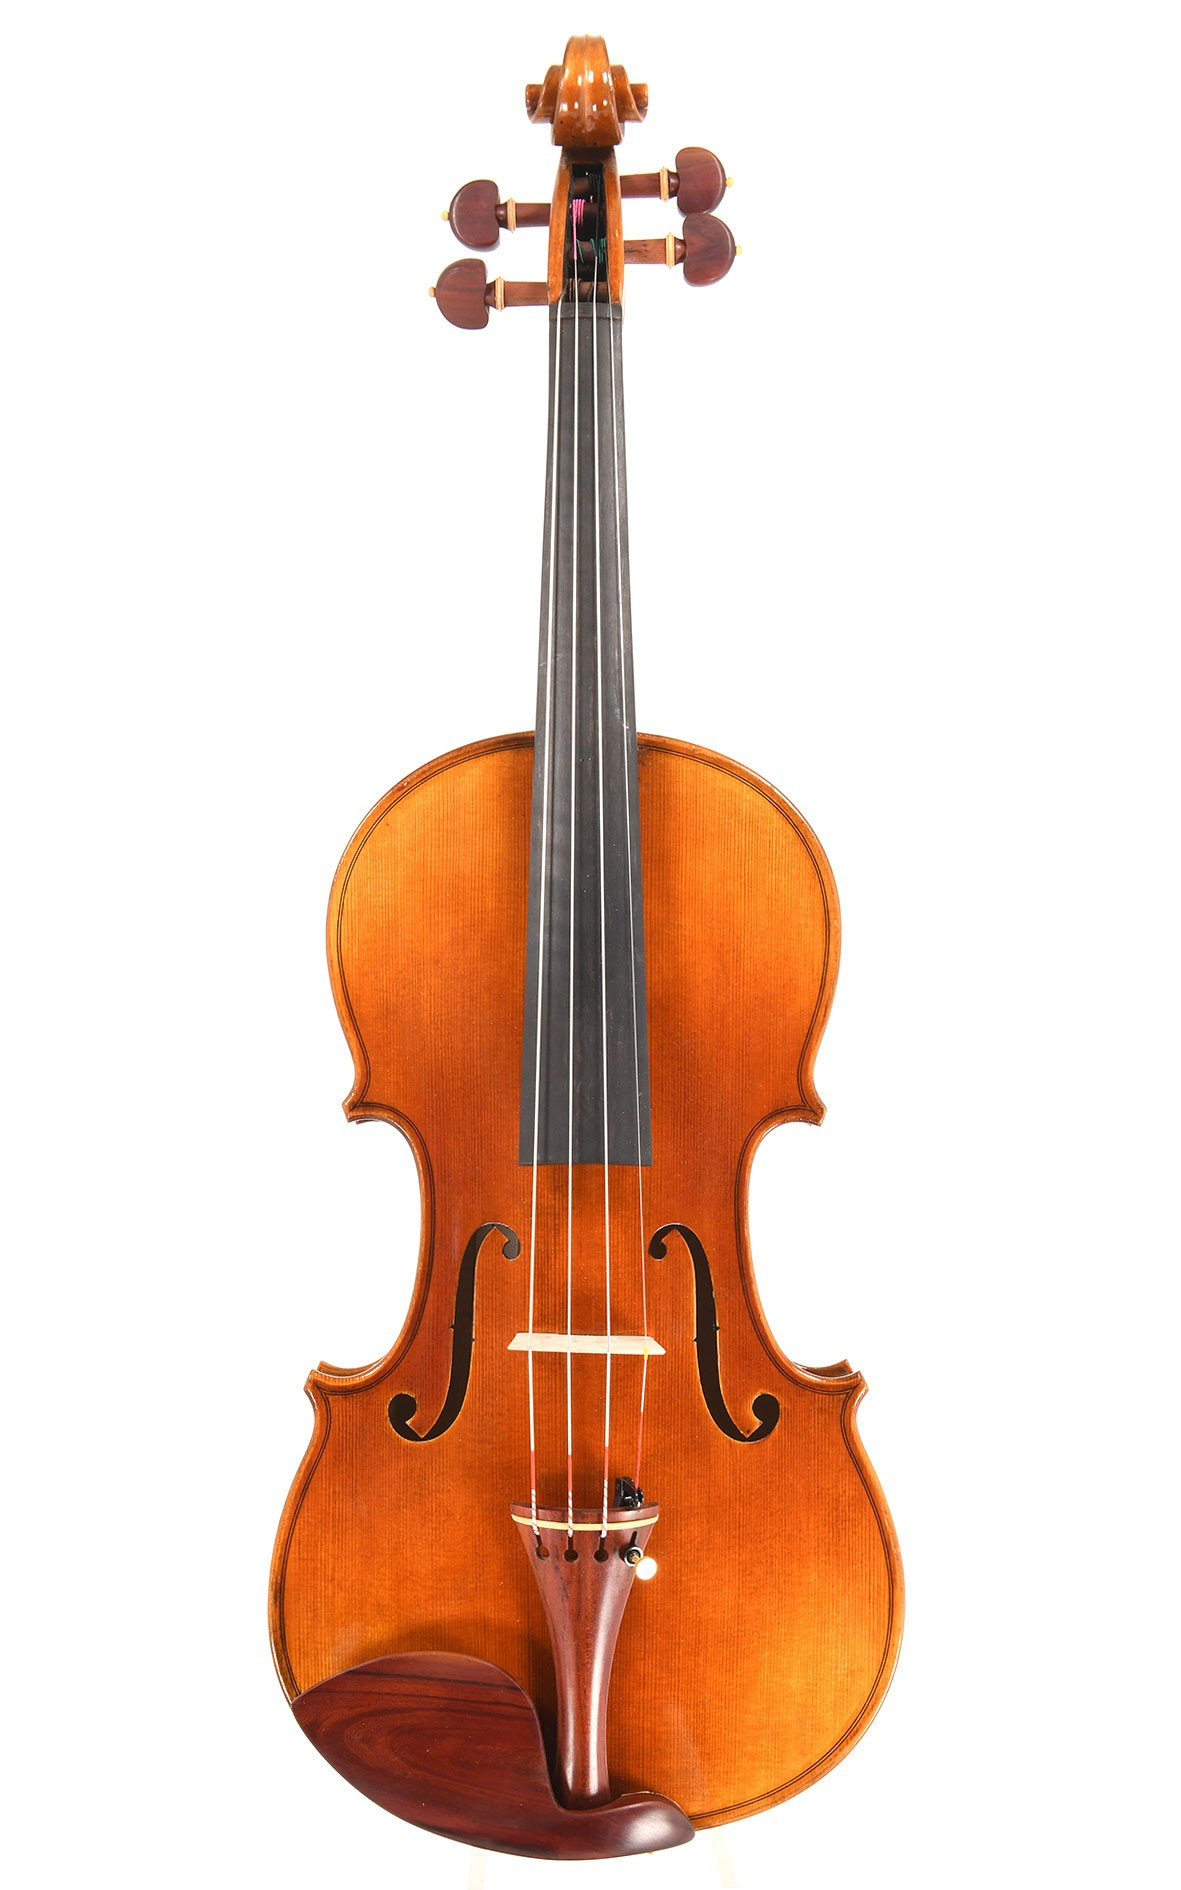 """Violin opus 12 no. 20 from the """"CV Selectio"""" portfolio - meets sophisticated musical standards"""